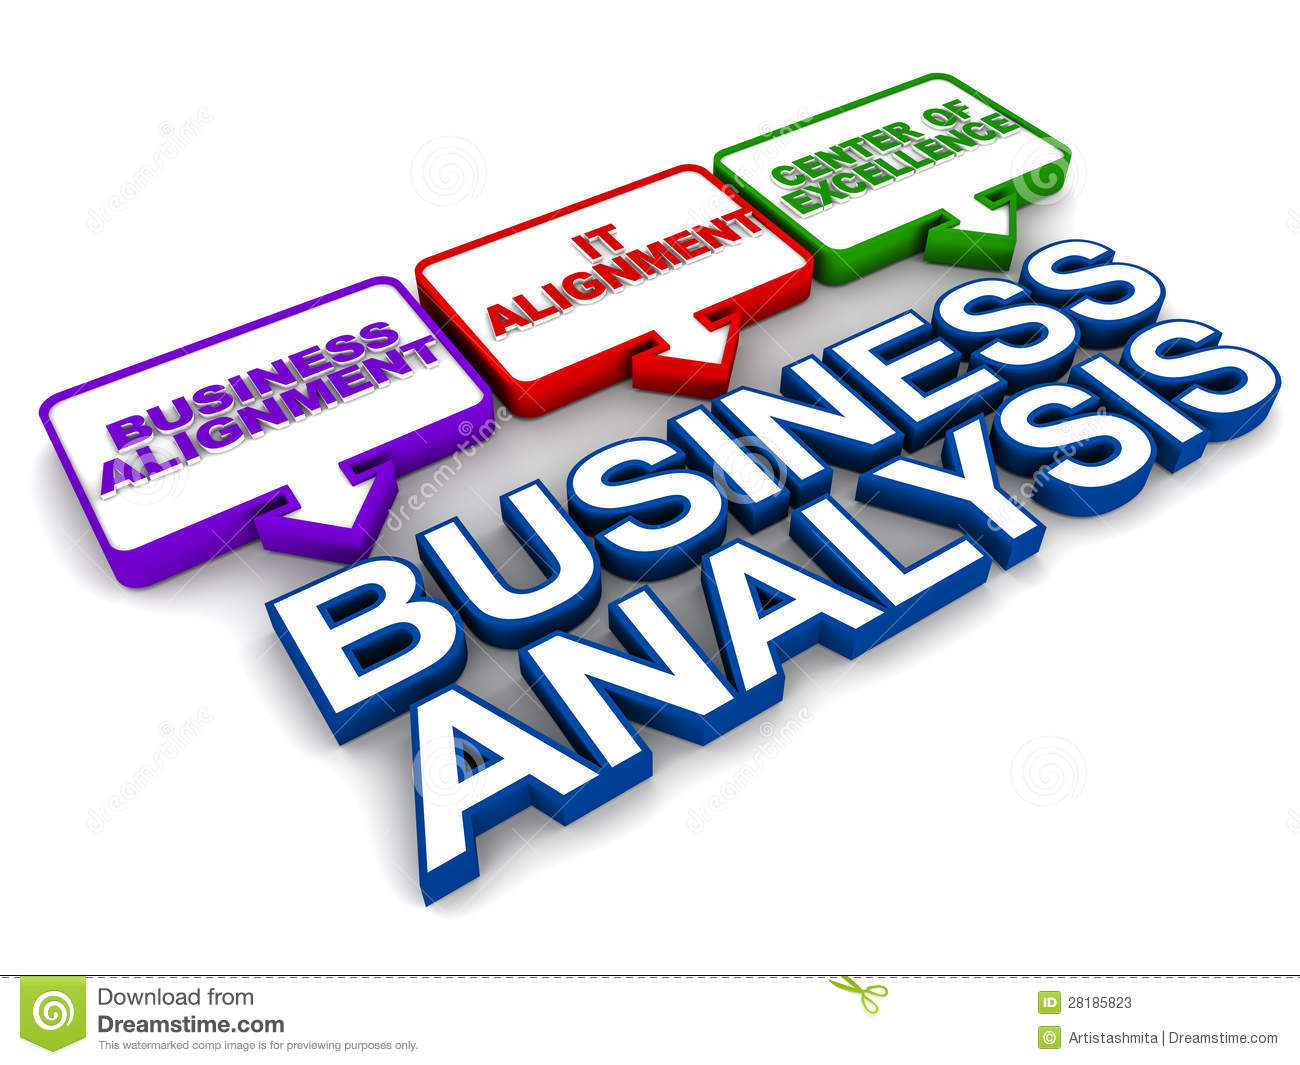 an analysis of business function Business continuity planning is the creation of a strategy to ensure that personnel and assets are protected and able to function in the event of a disaster  conduct a business impact analysis .